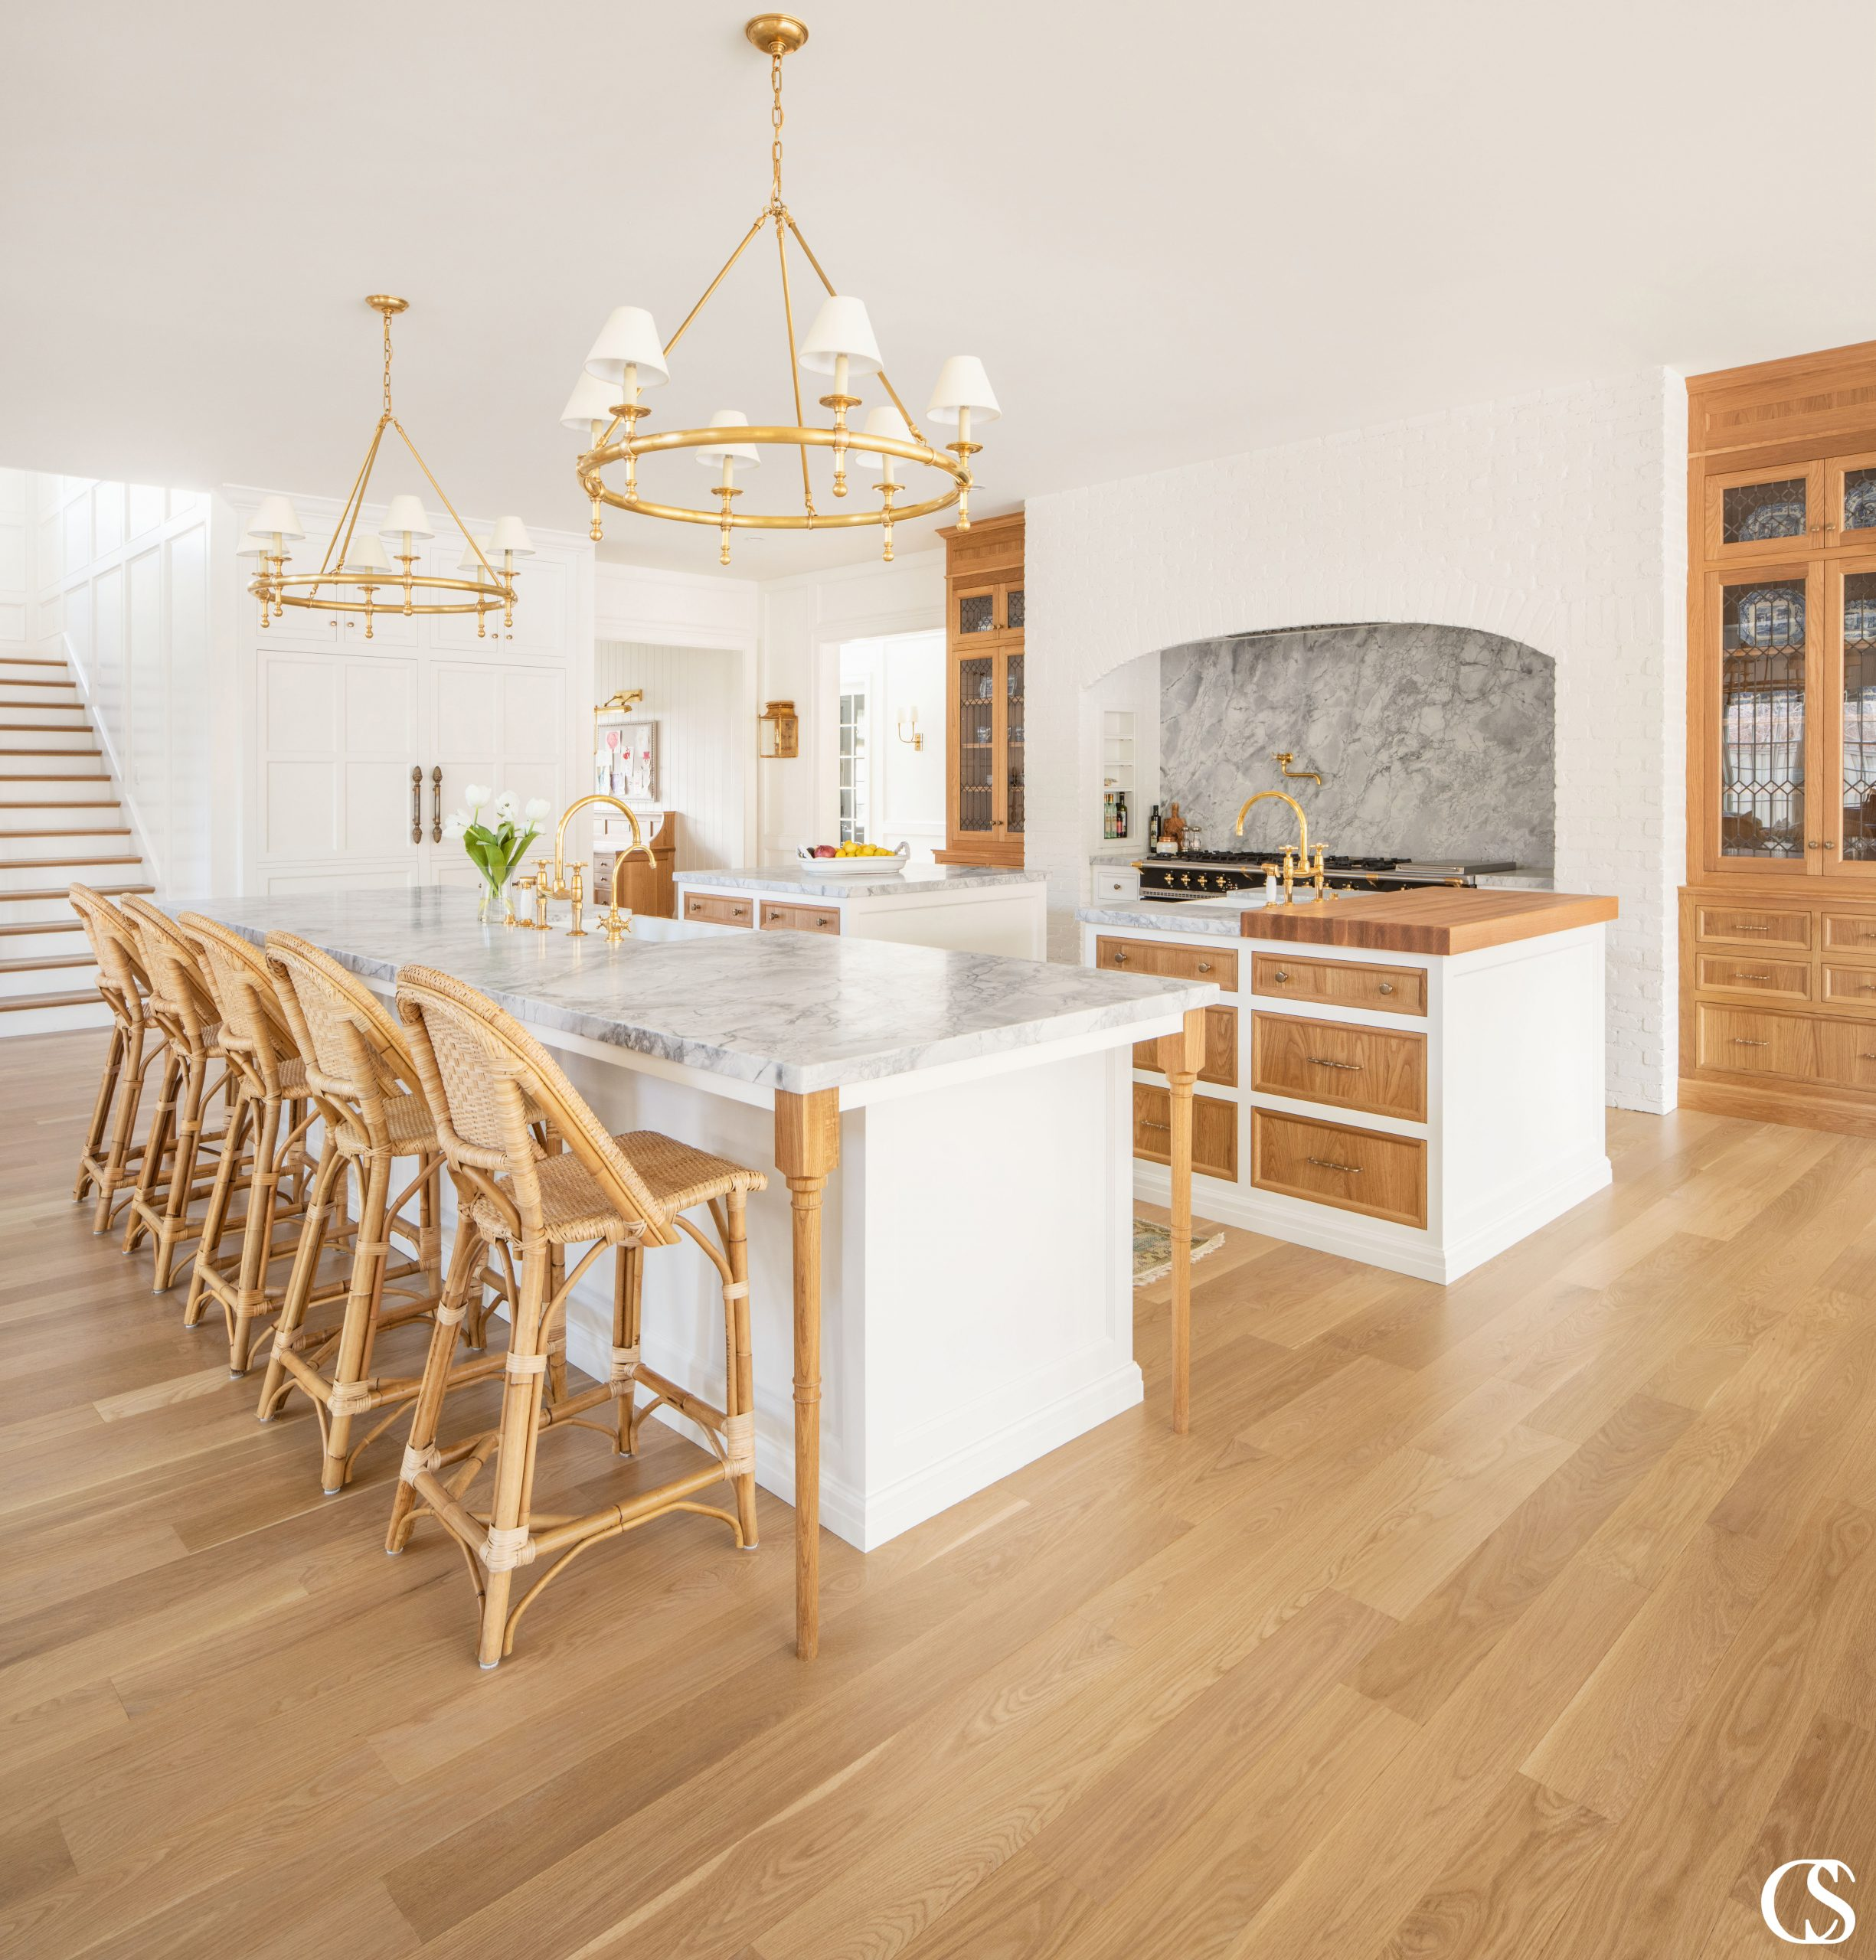 Custom kitchen cabinets are not a one-size-fits-all project. Your kitchen design should be as unique as you—and that means cabinet door fronts, materials, and hardware can all be changed up in one space to create the perfectly unique kitchen for you!